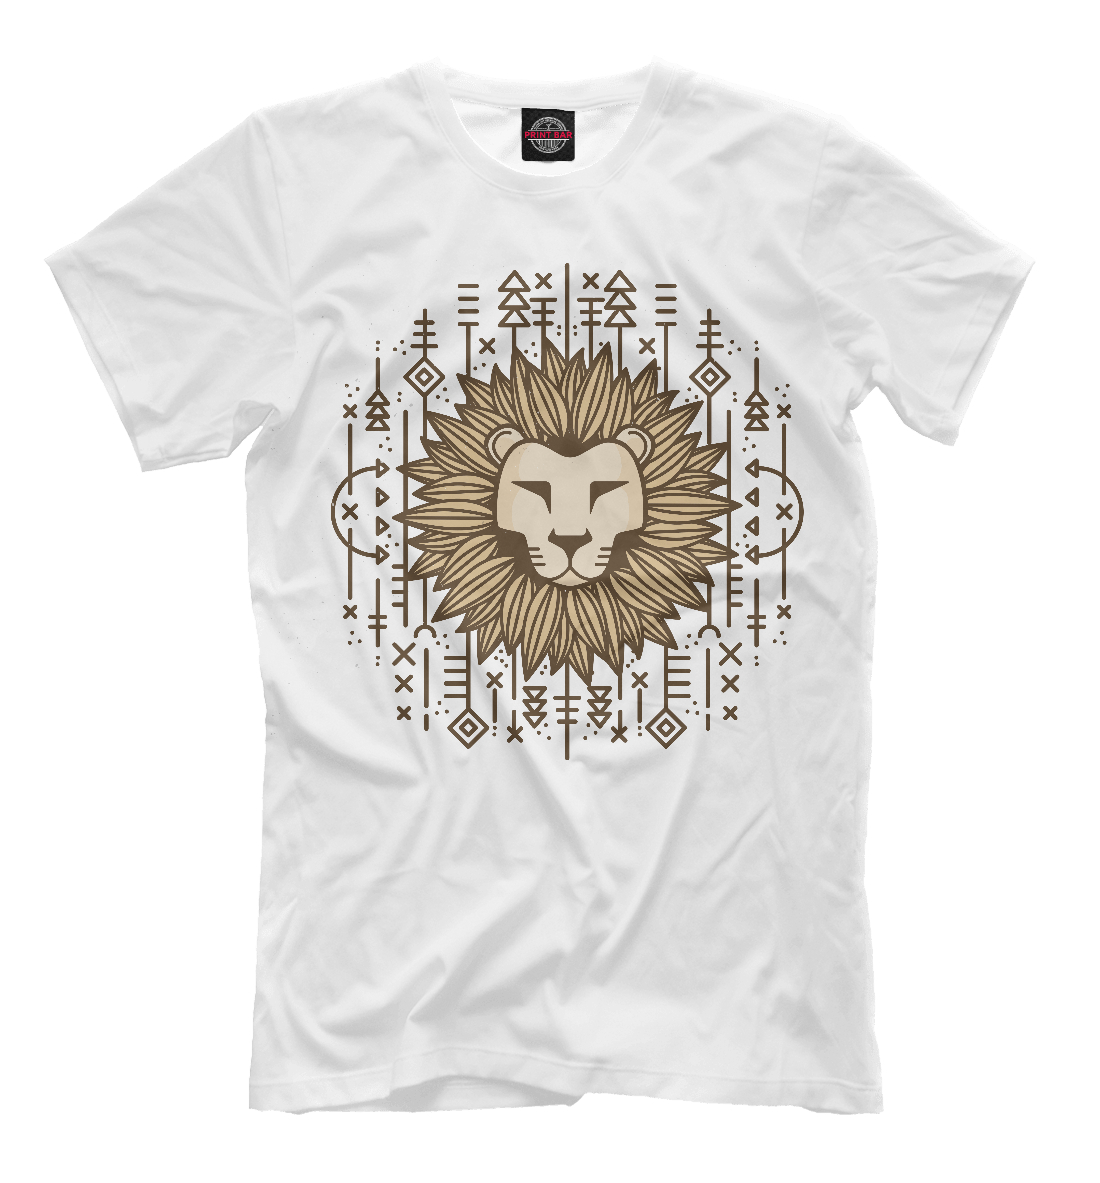 Купить Lion illustration, Printbar, Футболки, HIS-660949-fut-2